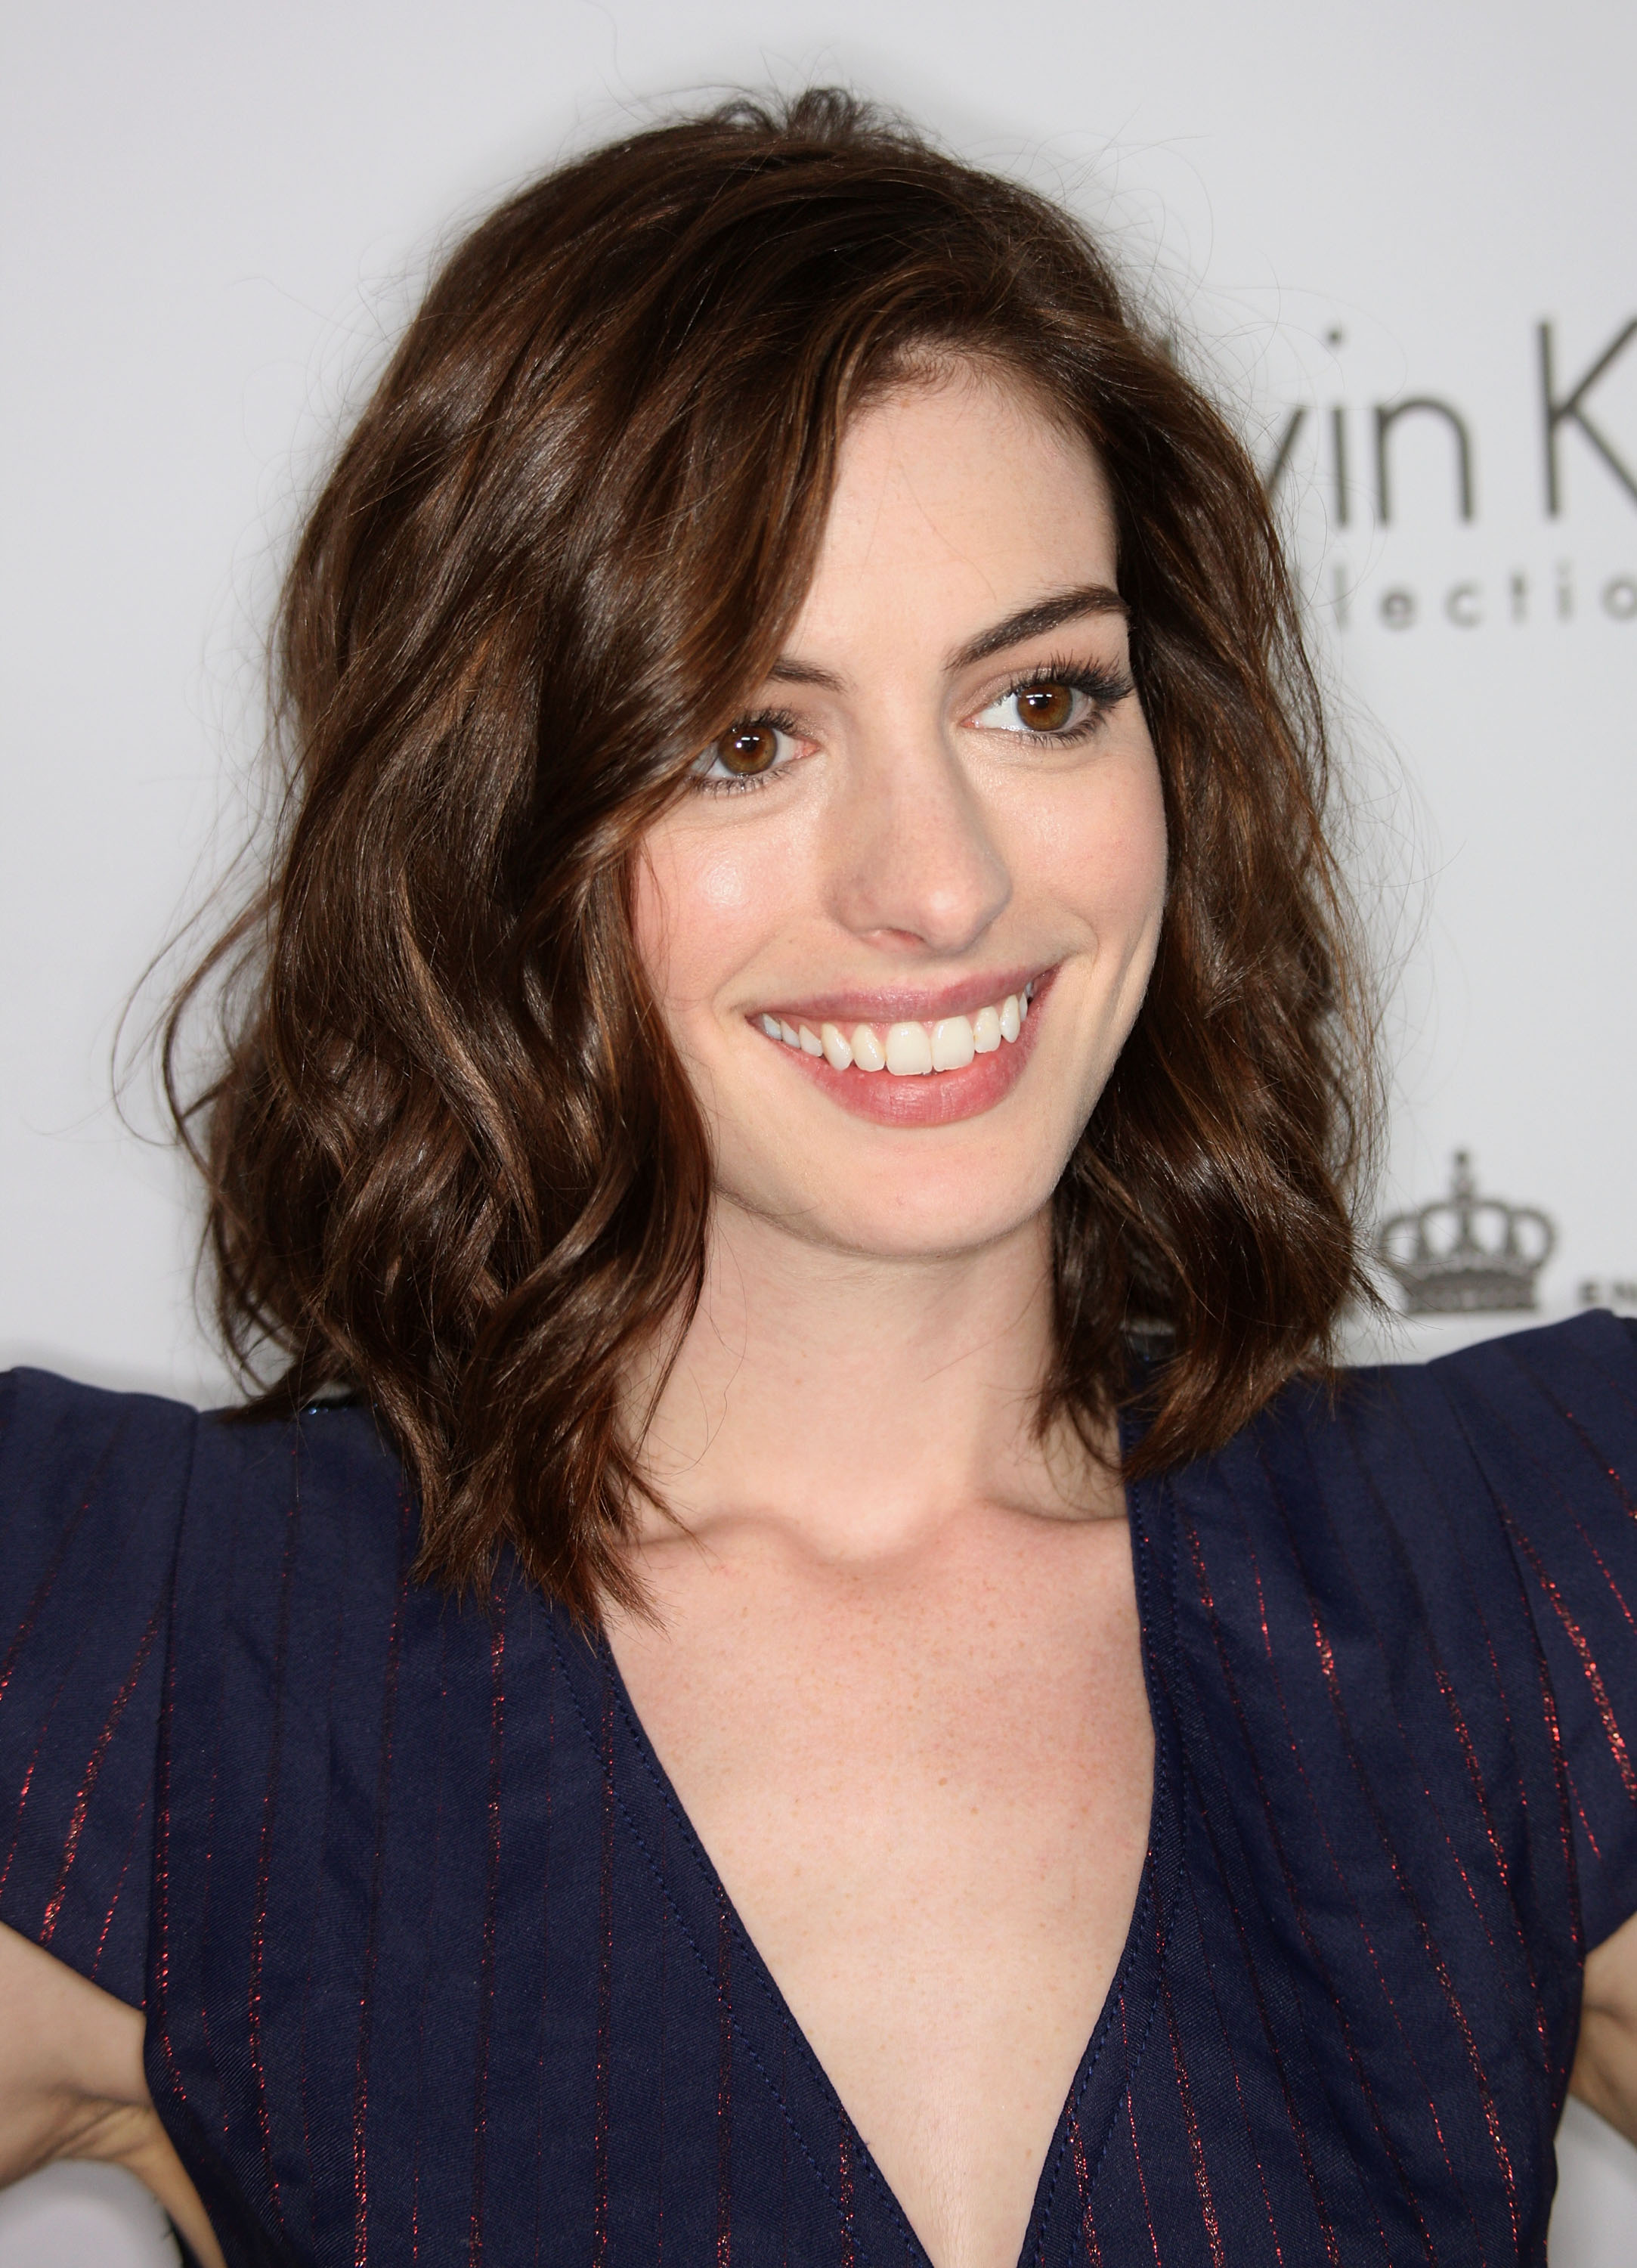 67622_Anne_Hathaway_2008-10-06_-_15th_annual_Women_In_Hollywood_Tribute_692_122_371lo.jpg